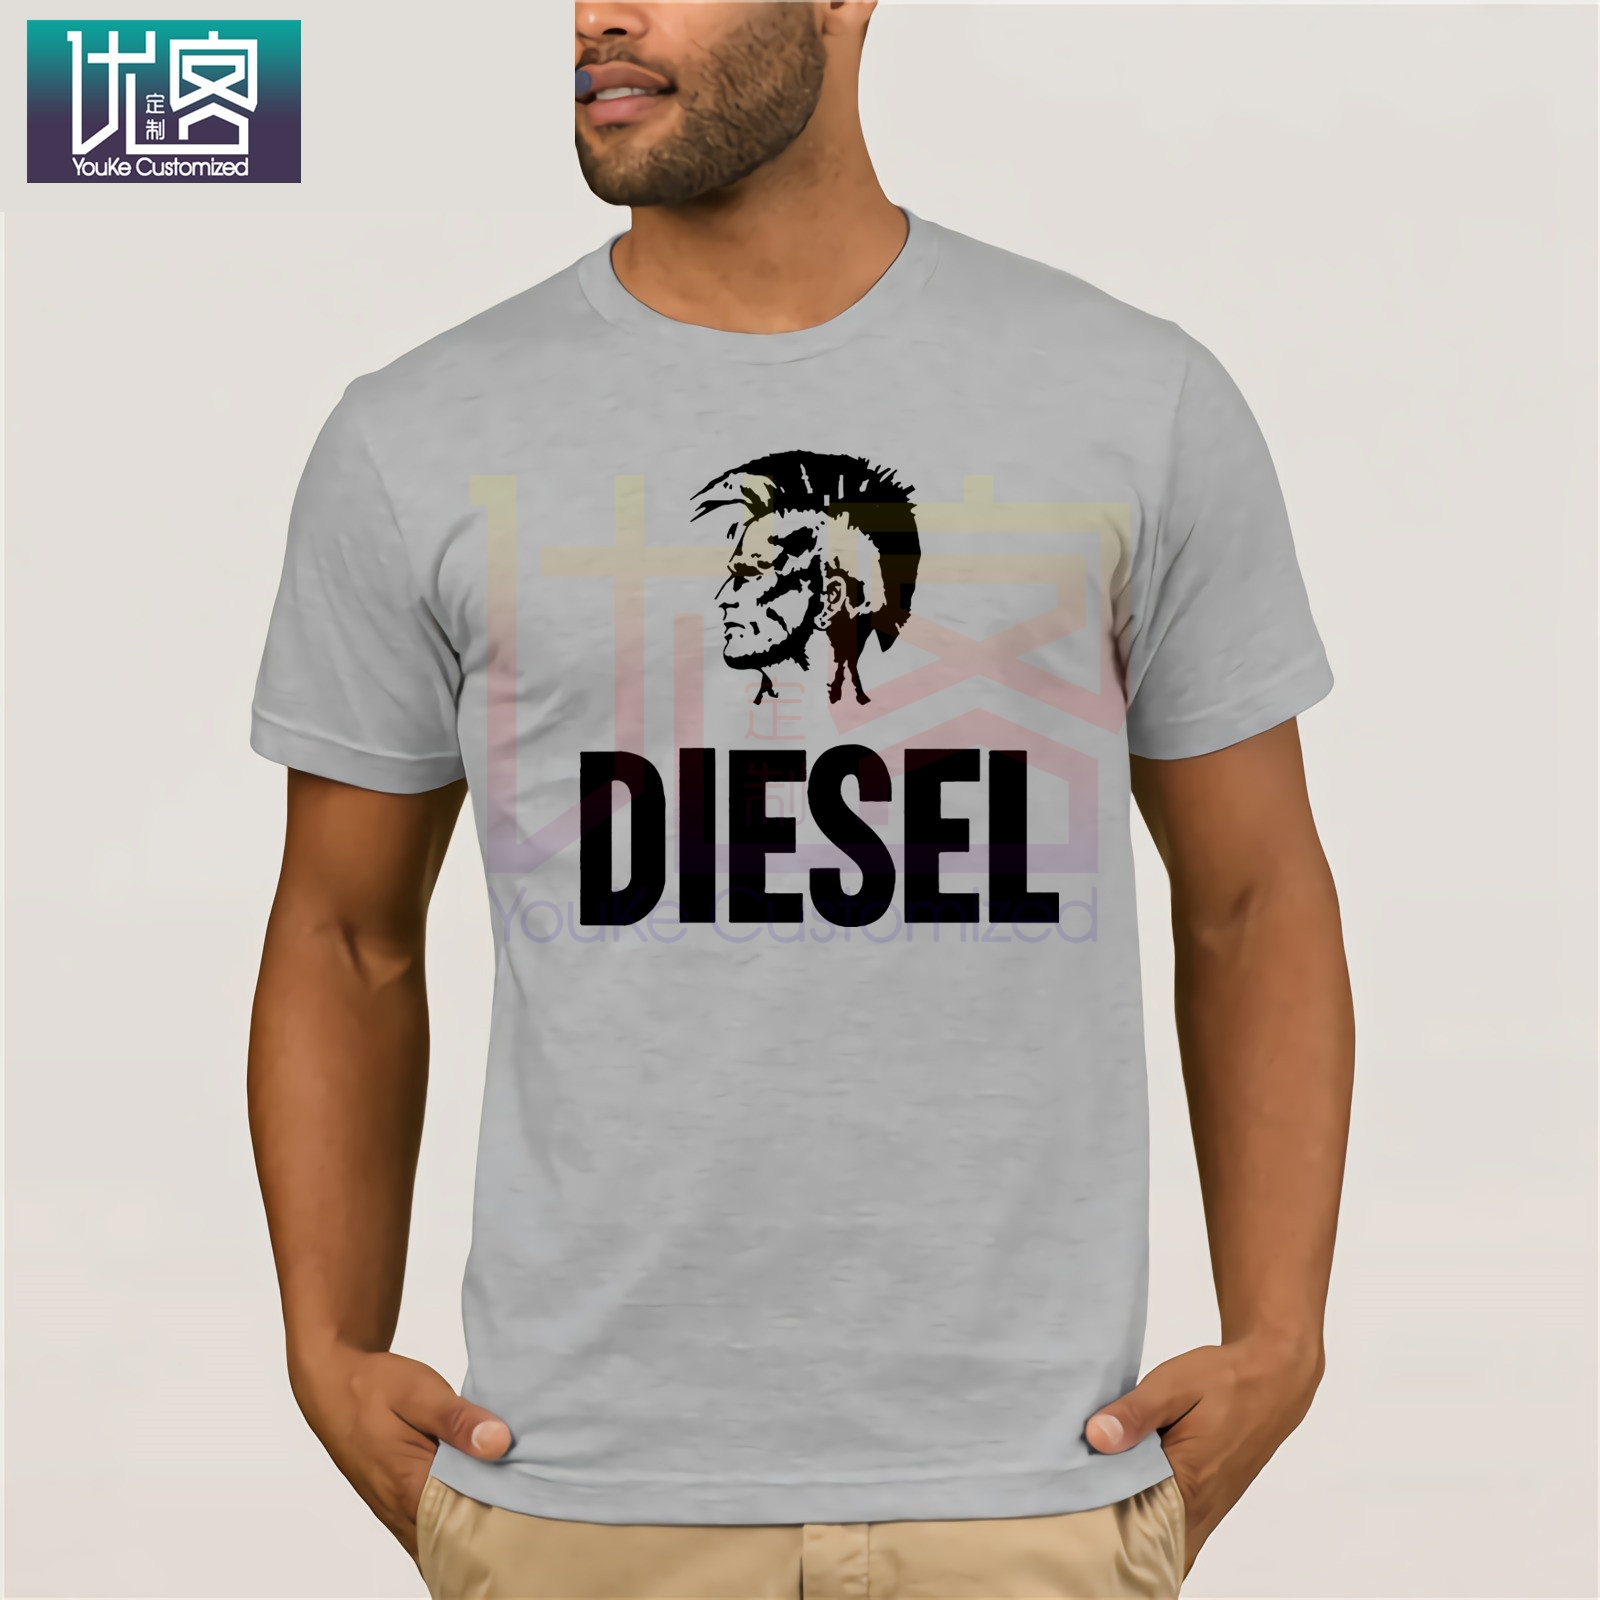 2020 NEW Men S Diesel T Shirt Print 100 Cotton Euro Size S 3xl Unique Loose Casual Spring Top Tee Casual Short Sleeve Top